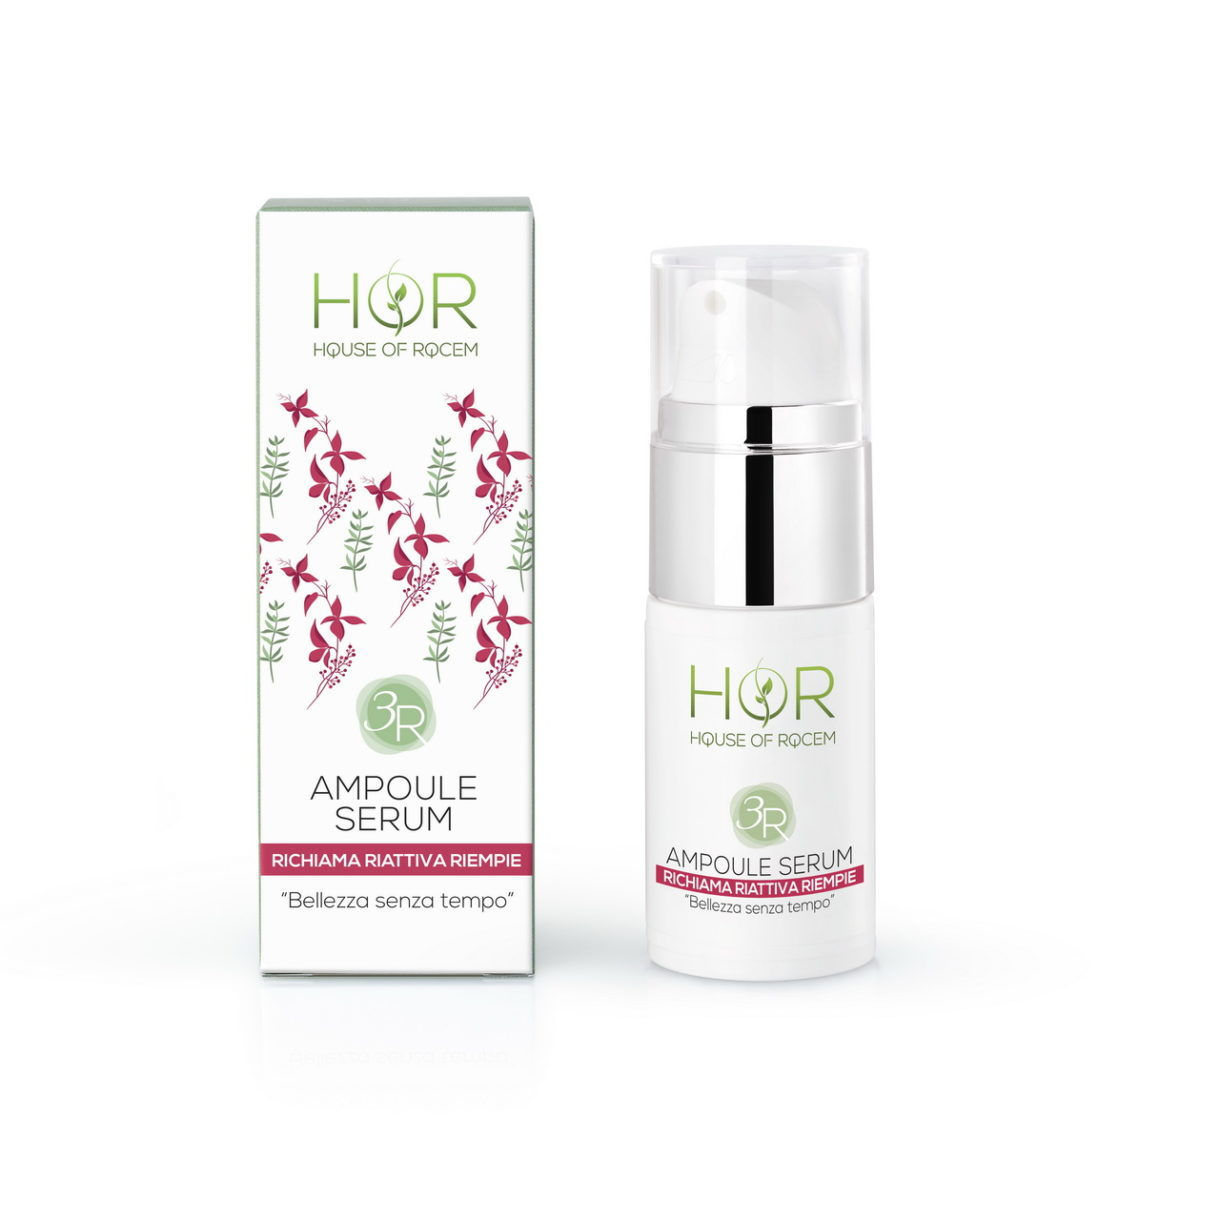 TRIPLE R. Ampule serum coppia